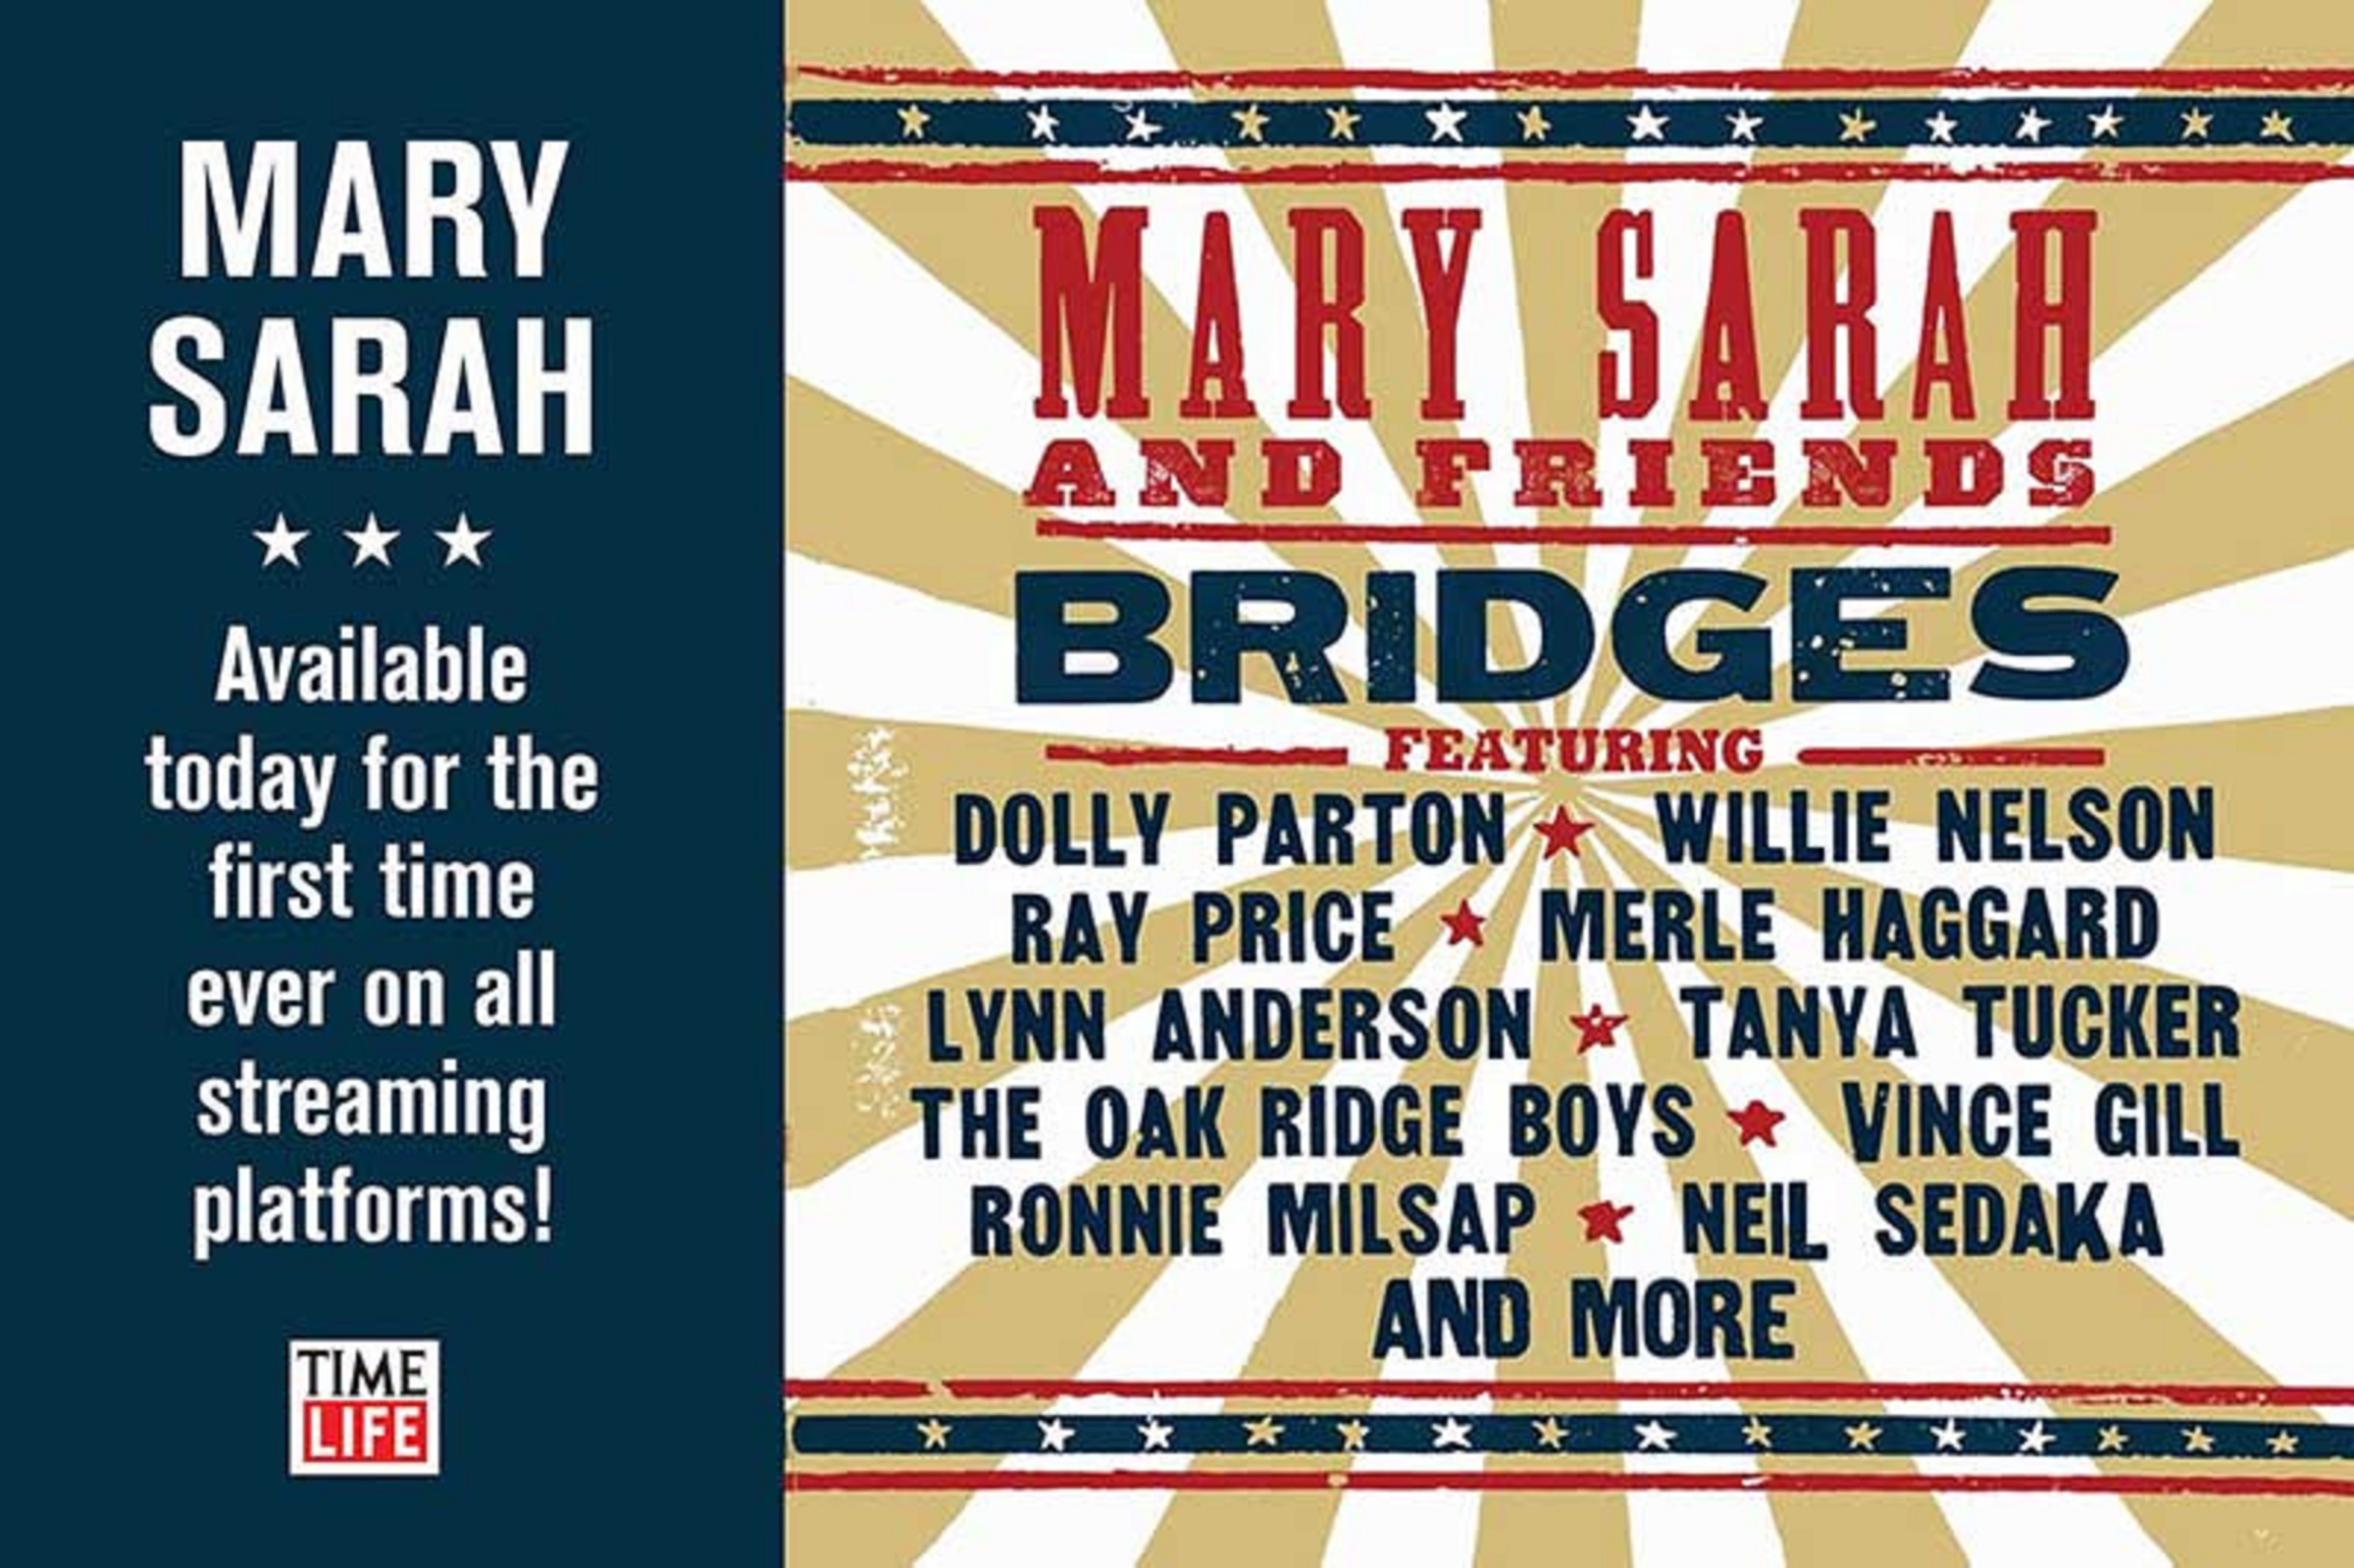 Generations Come Together Through Timeless Country Classic Songs On Mary Sarah's 'Bridges' Reissued Via Time Life